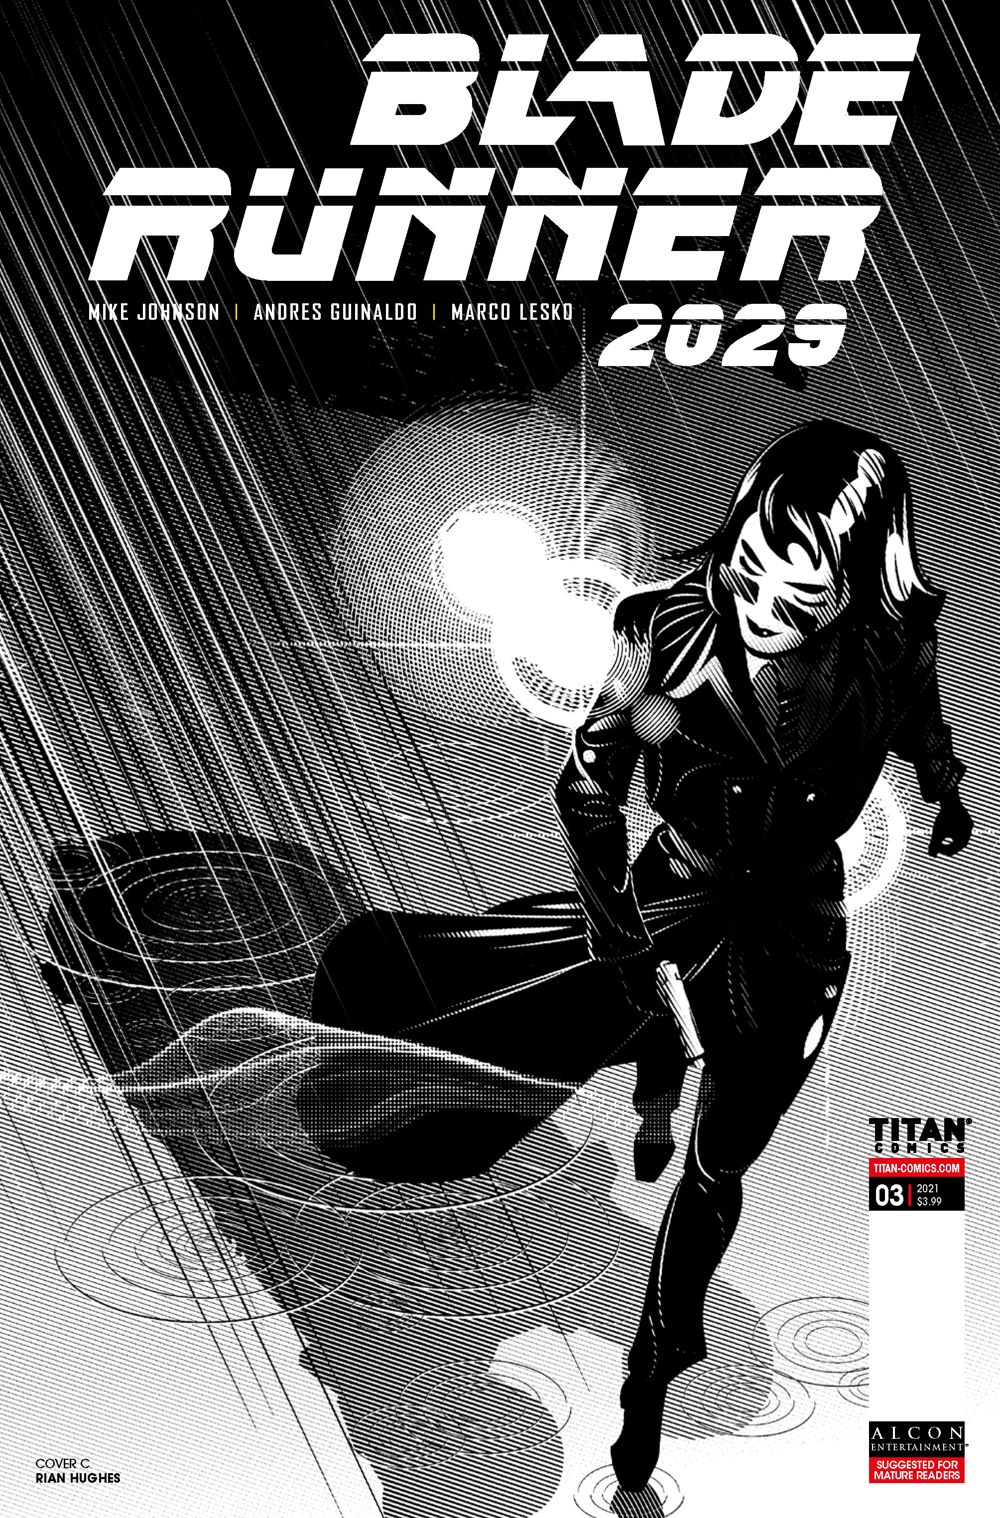 BR20293c ComicList Previews: BLADE RUNNER 2029 #3